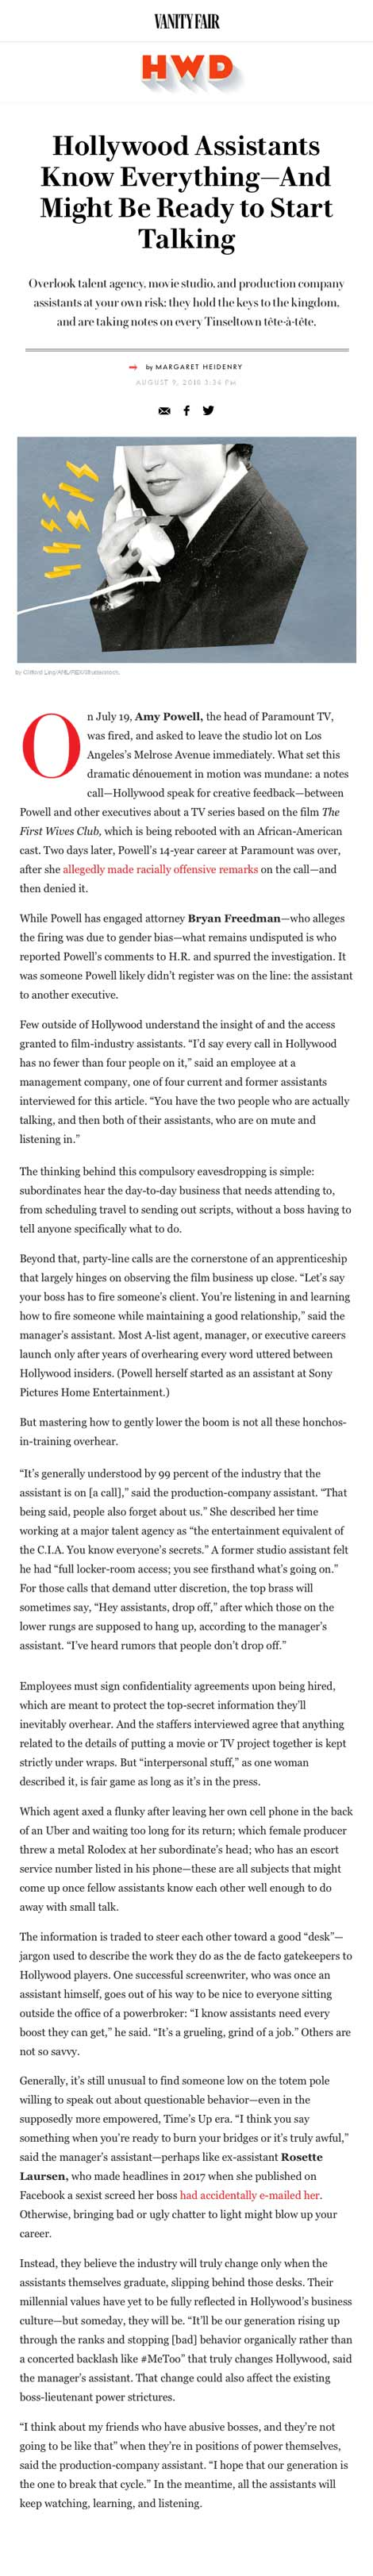 Hollywood Assistants Know Everything—And Might Be Ready to Start Talking - article by VanityFair.com